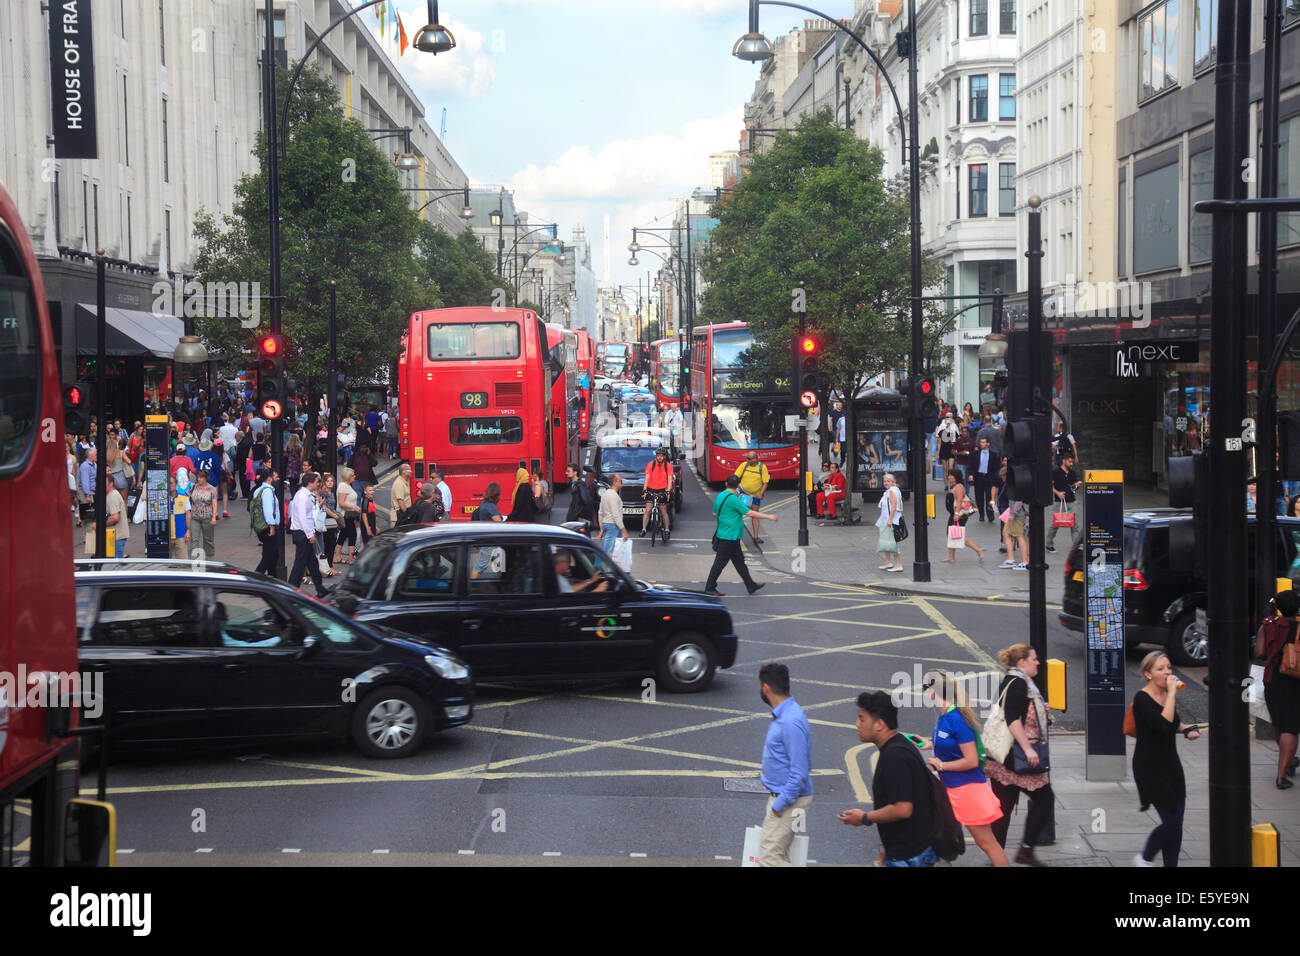 Oxford Street on a busy summers day in London's West End - Stock Image